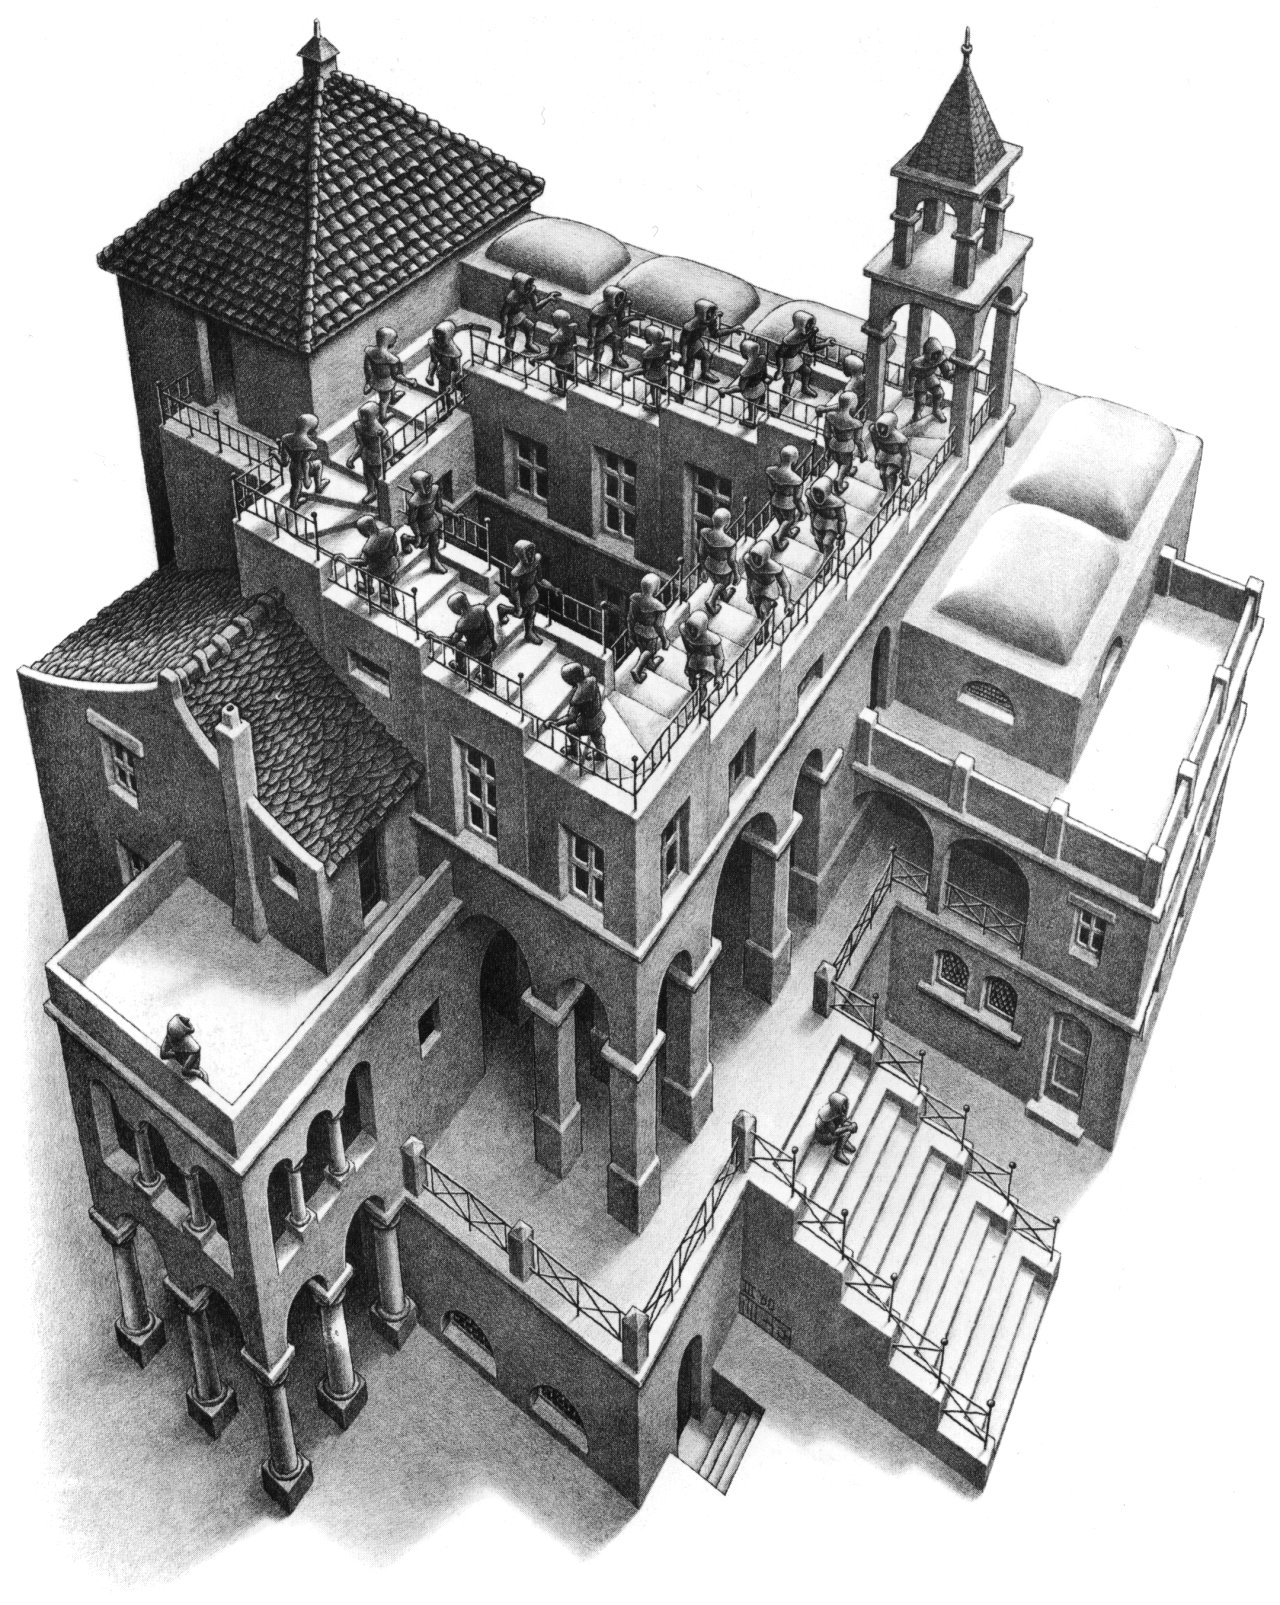 'Ascending and Descending' by M.C. Escher